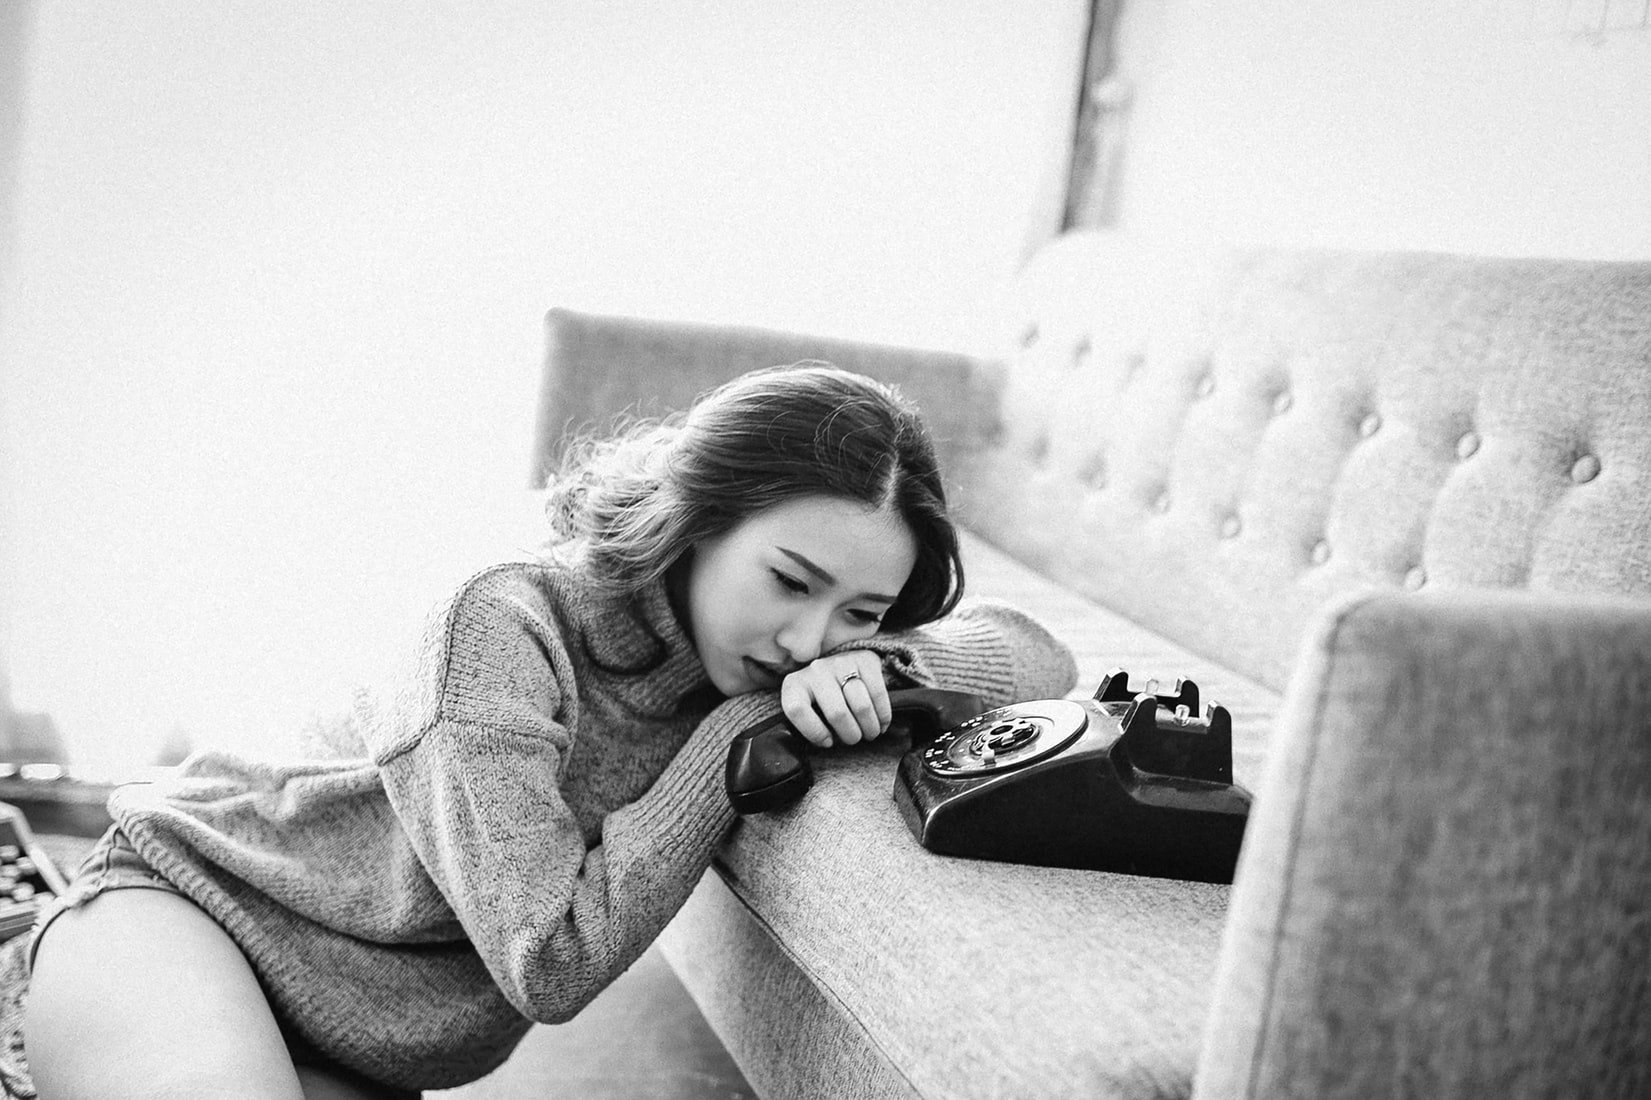 Depressed brunette asian woman leaning on sofa holding phone in hand